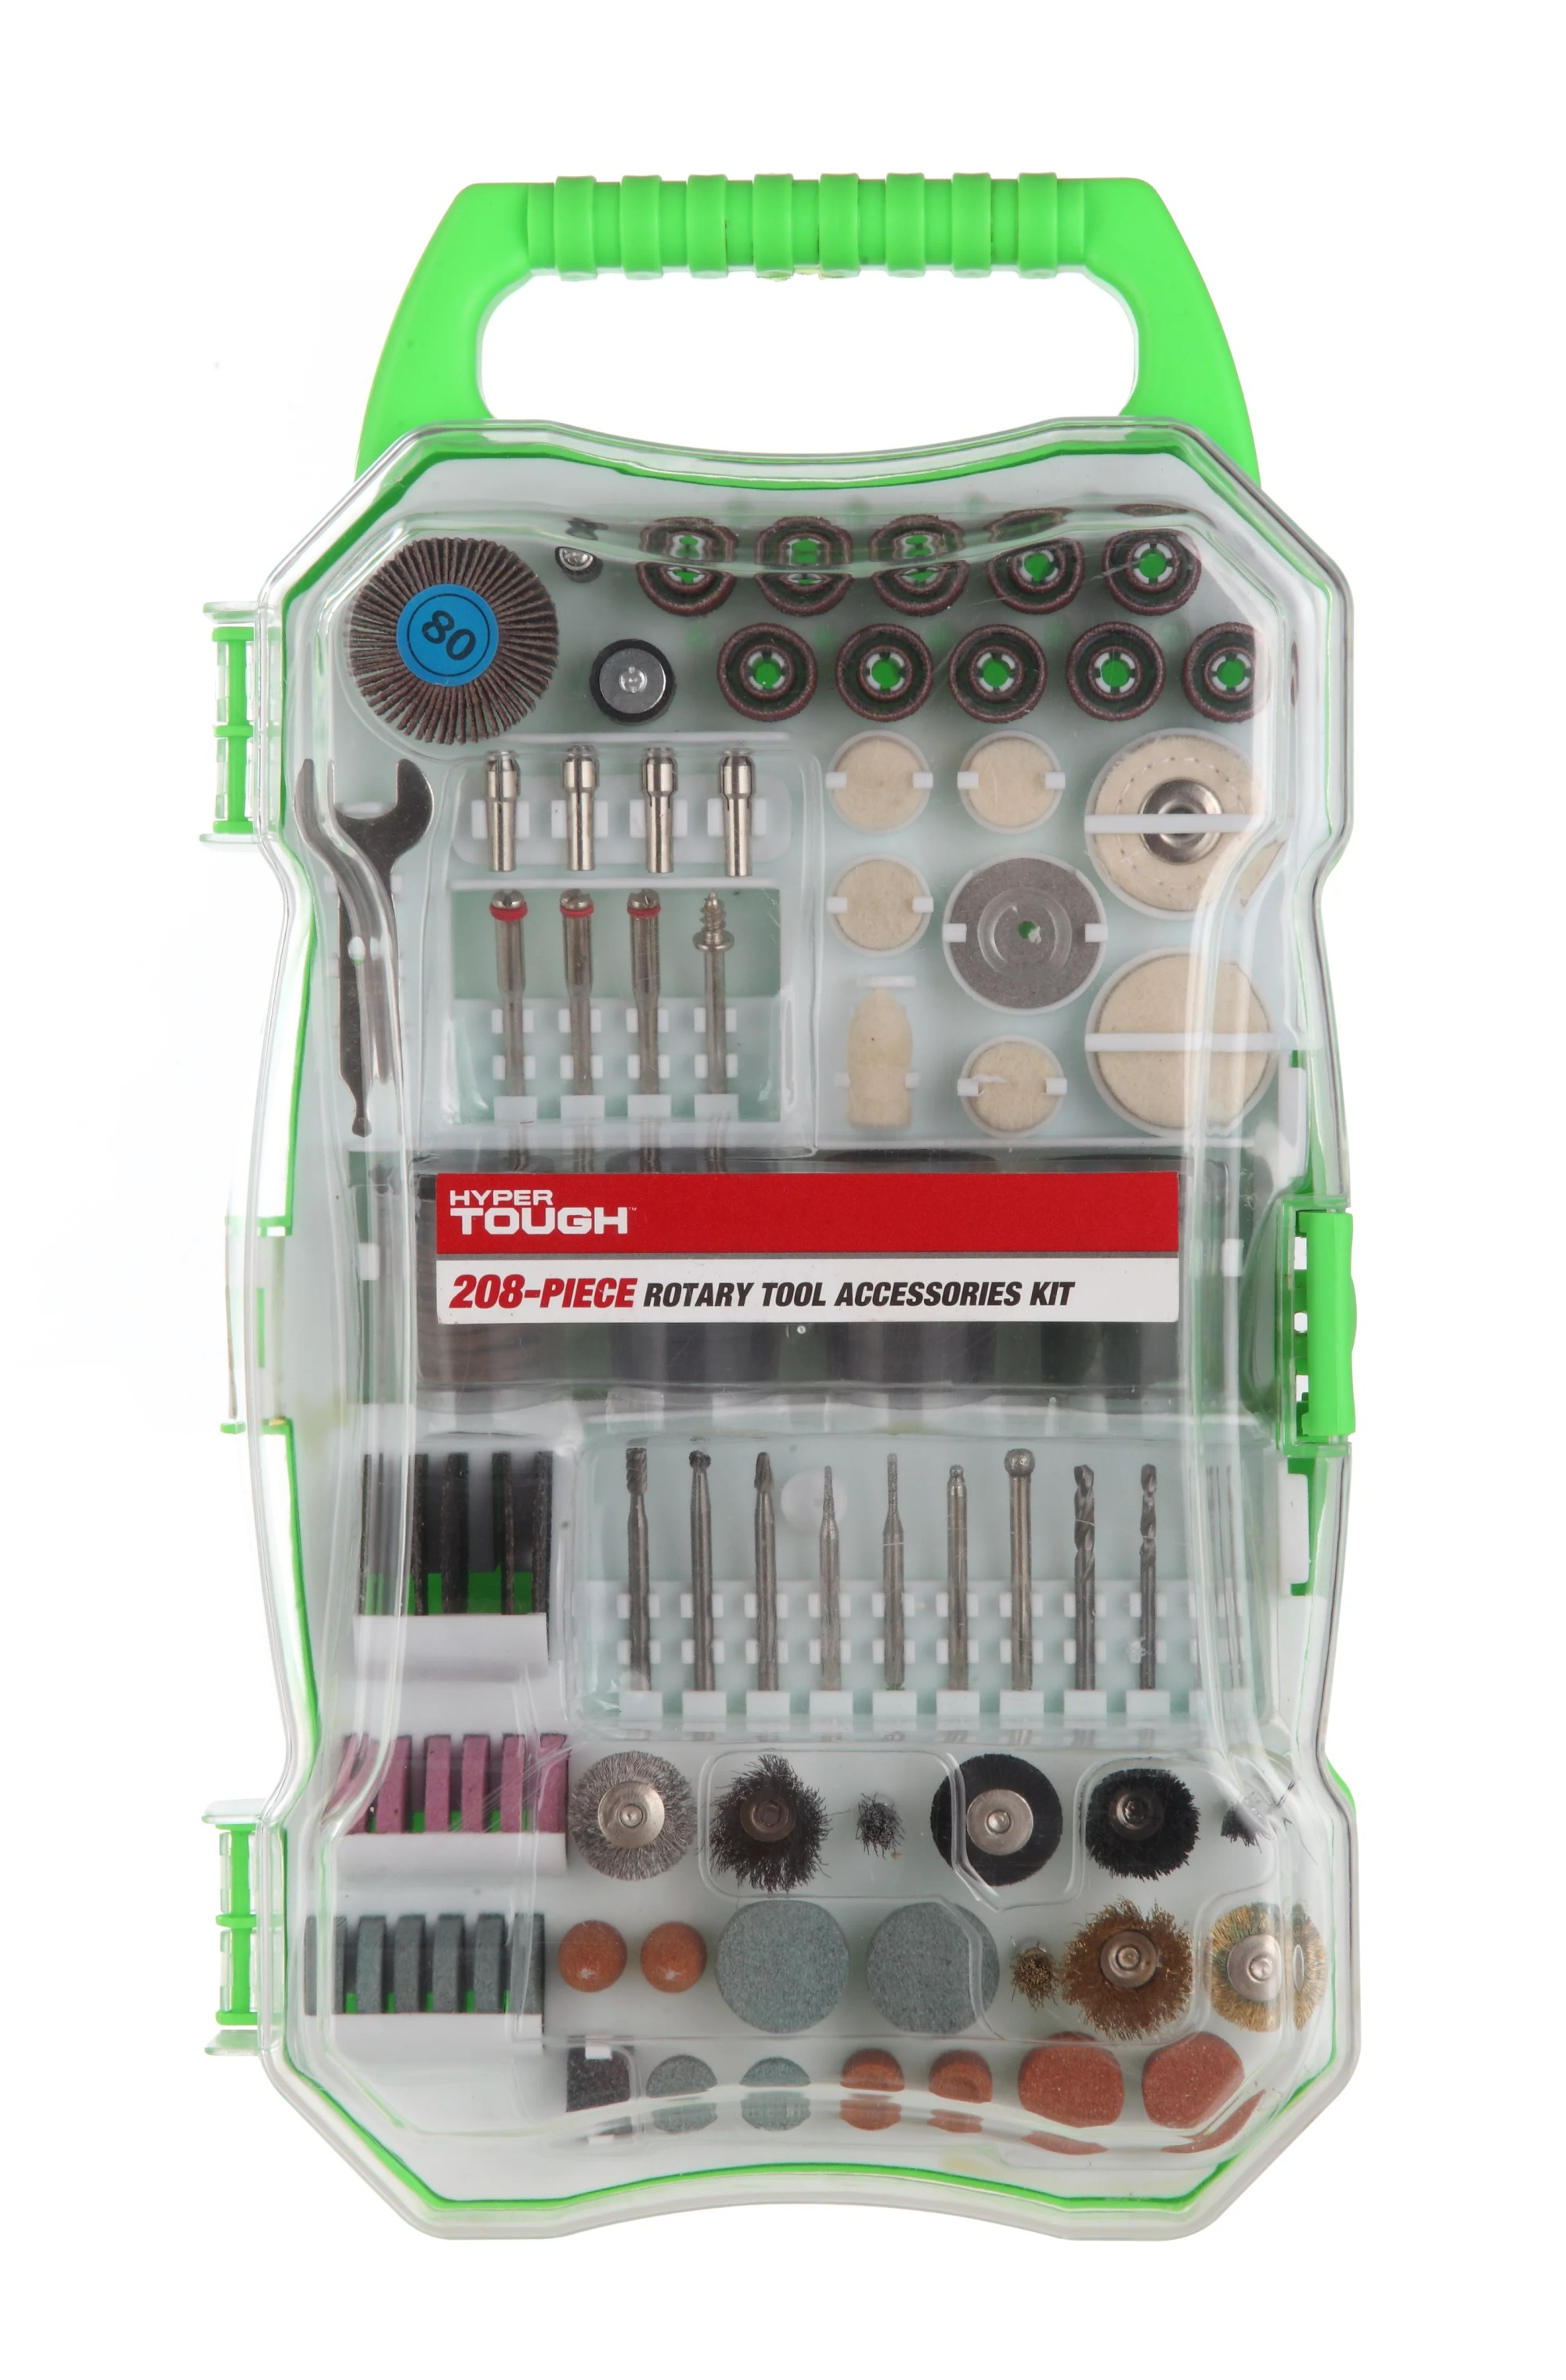 hight resolution of hyper tough 208 piece rotary tool accessory kit with storage case walmart com